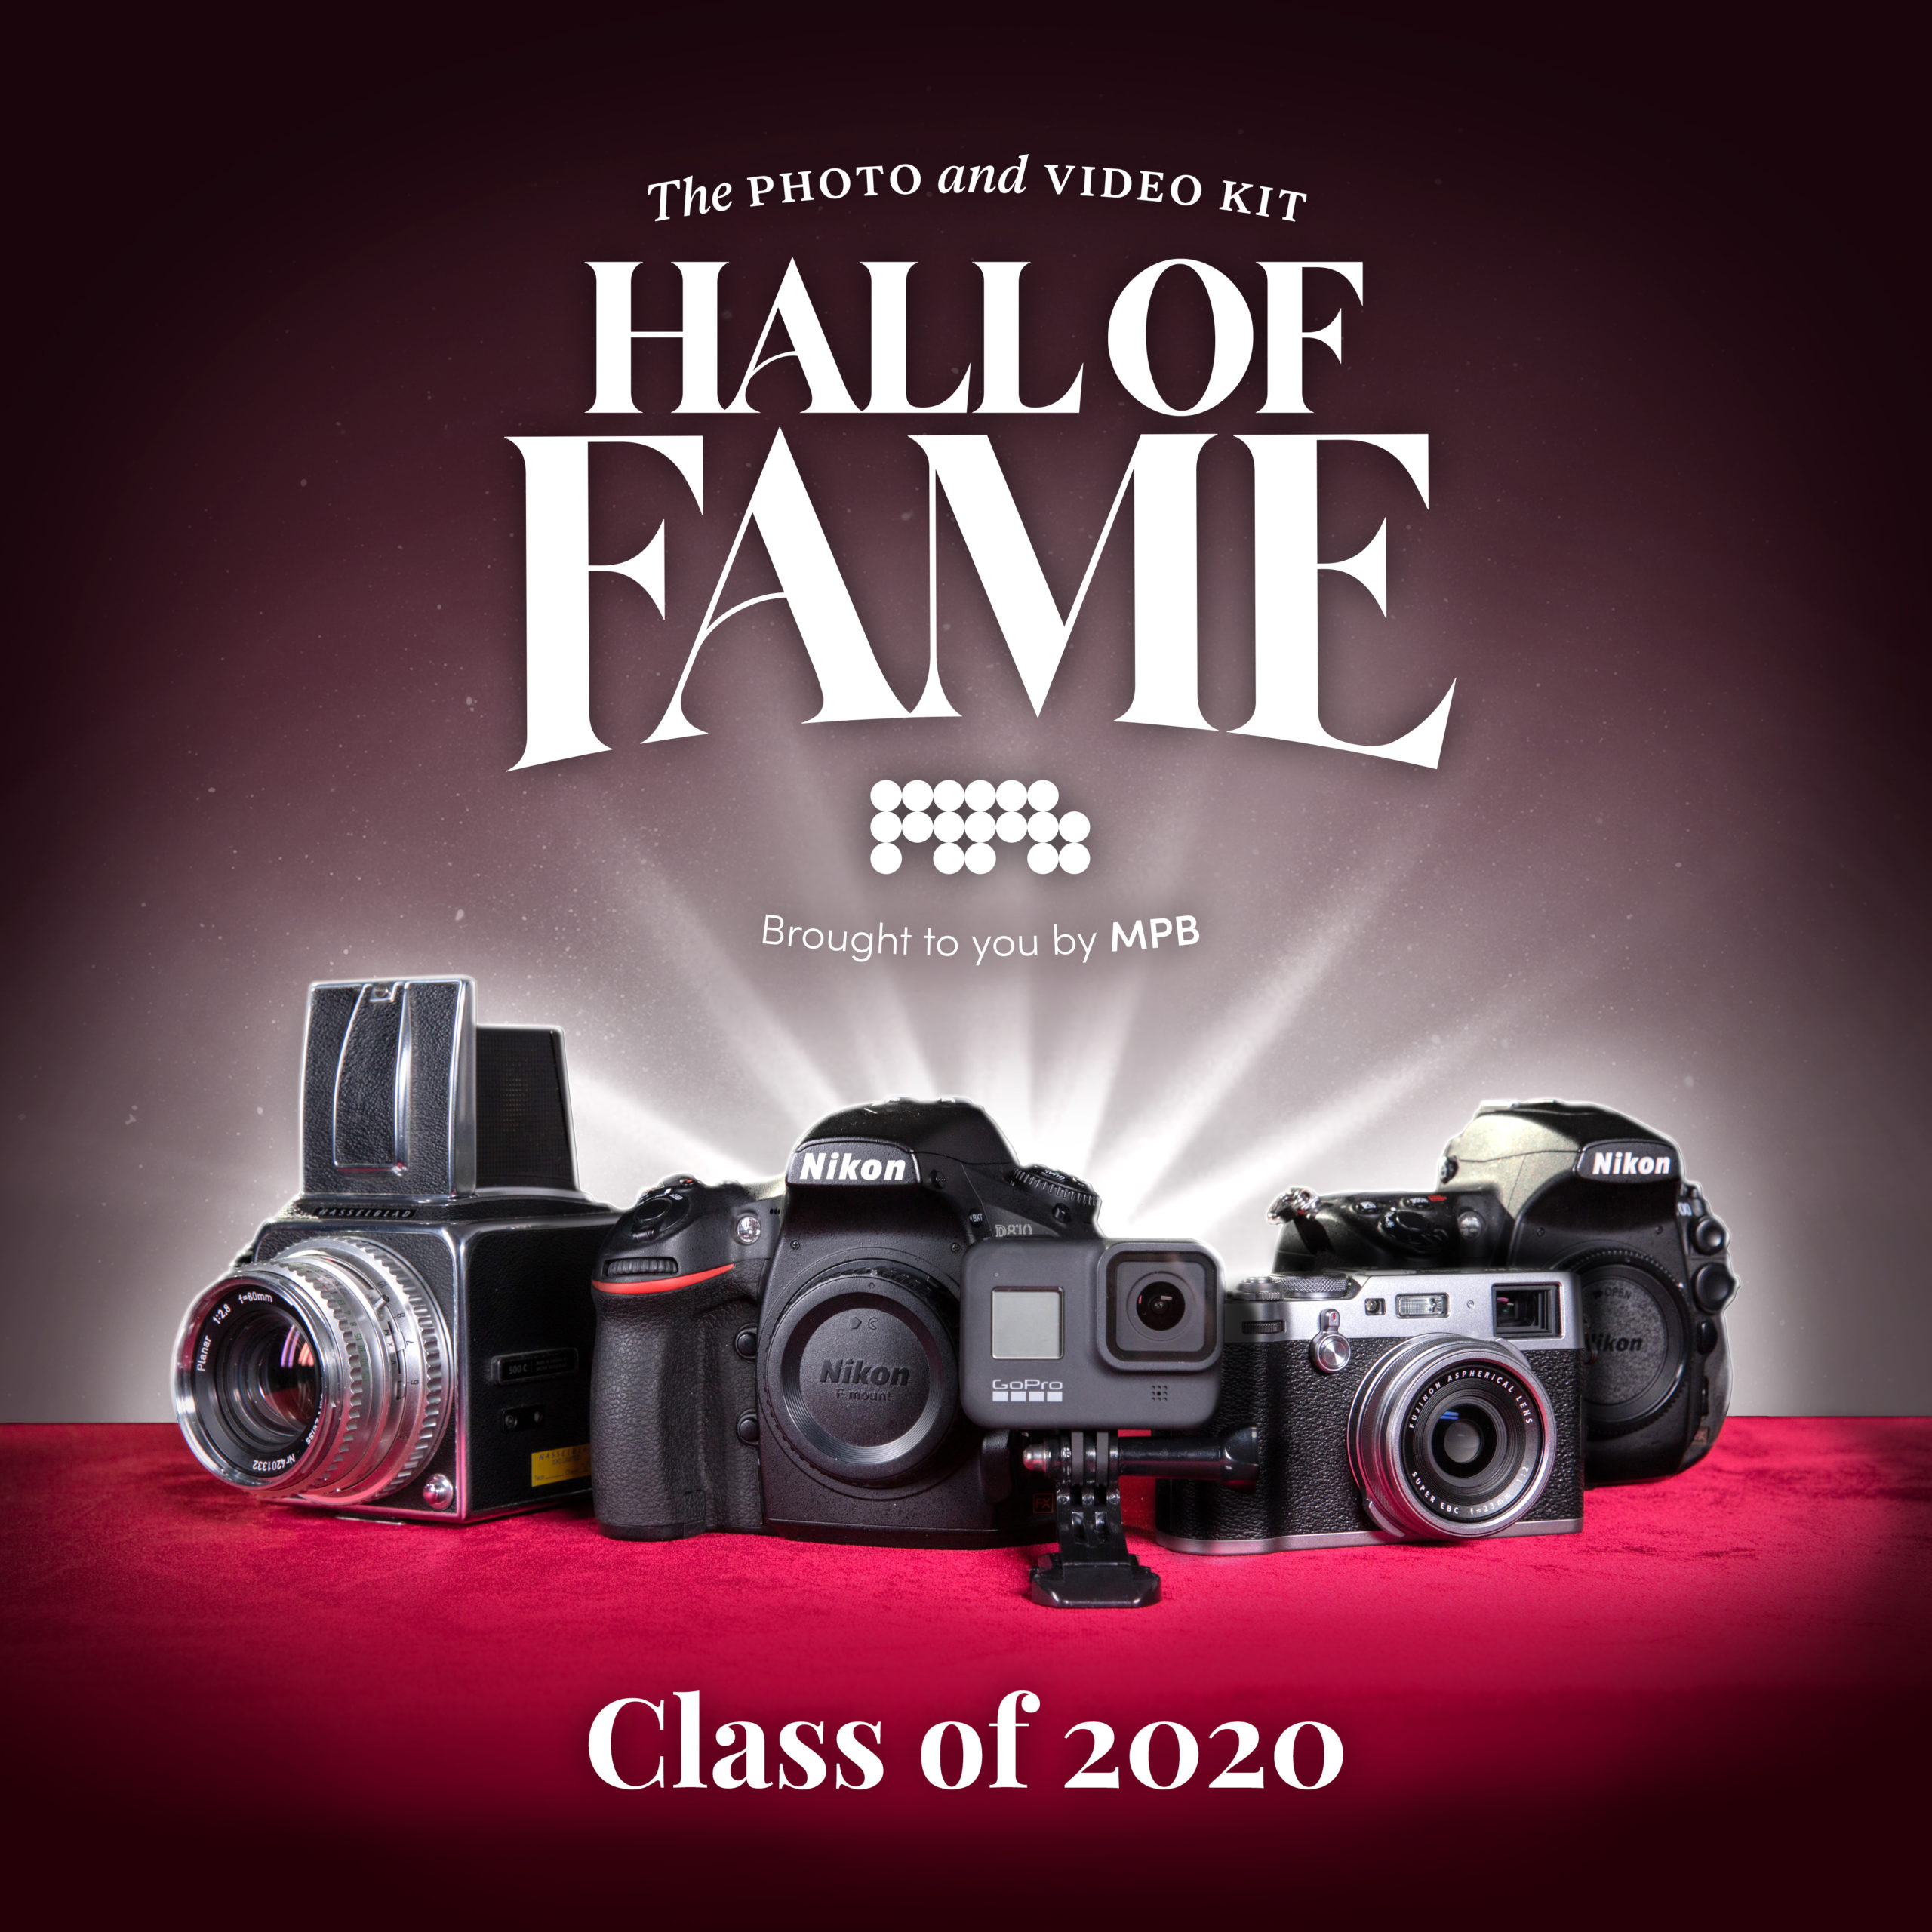 MPB announces 'Hall of Fame' cameras and lenses - Amateur Photographer